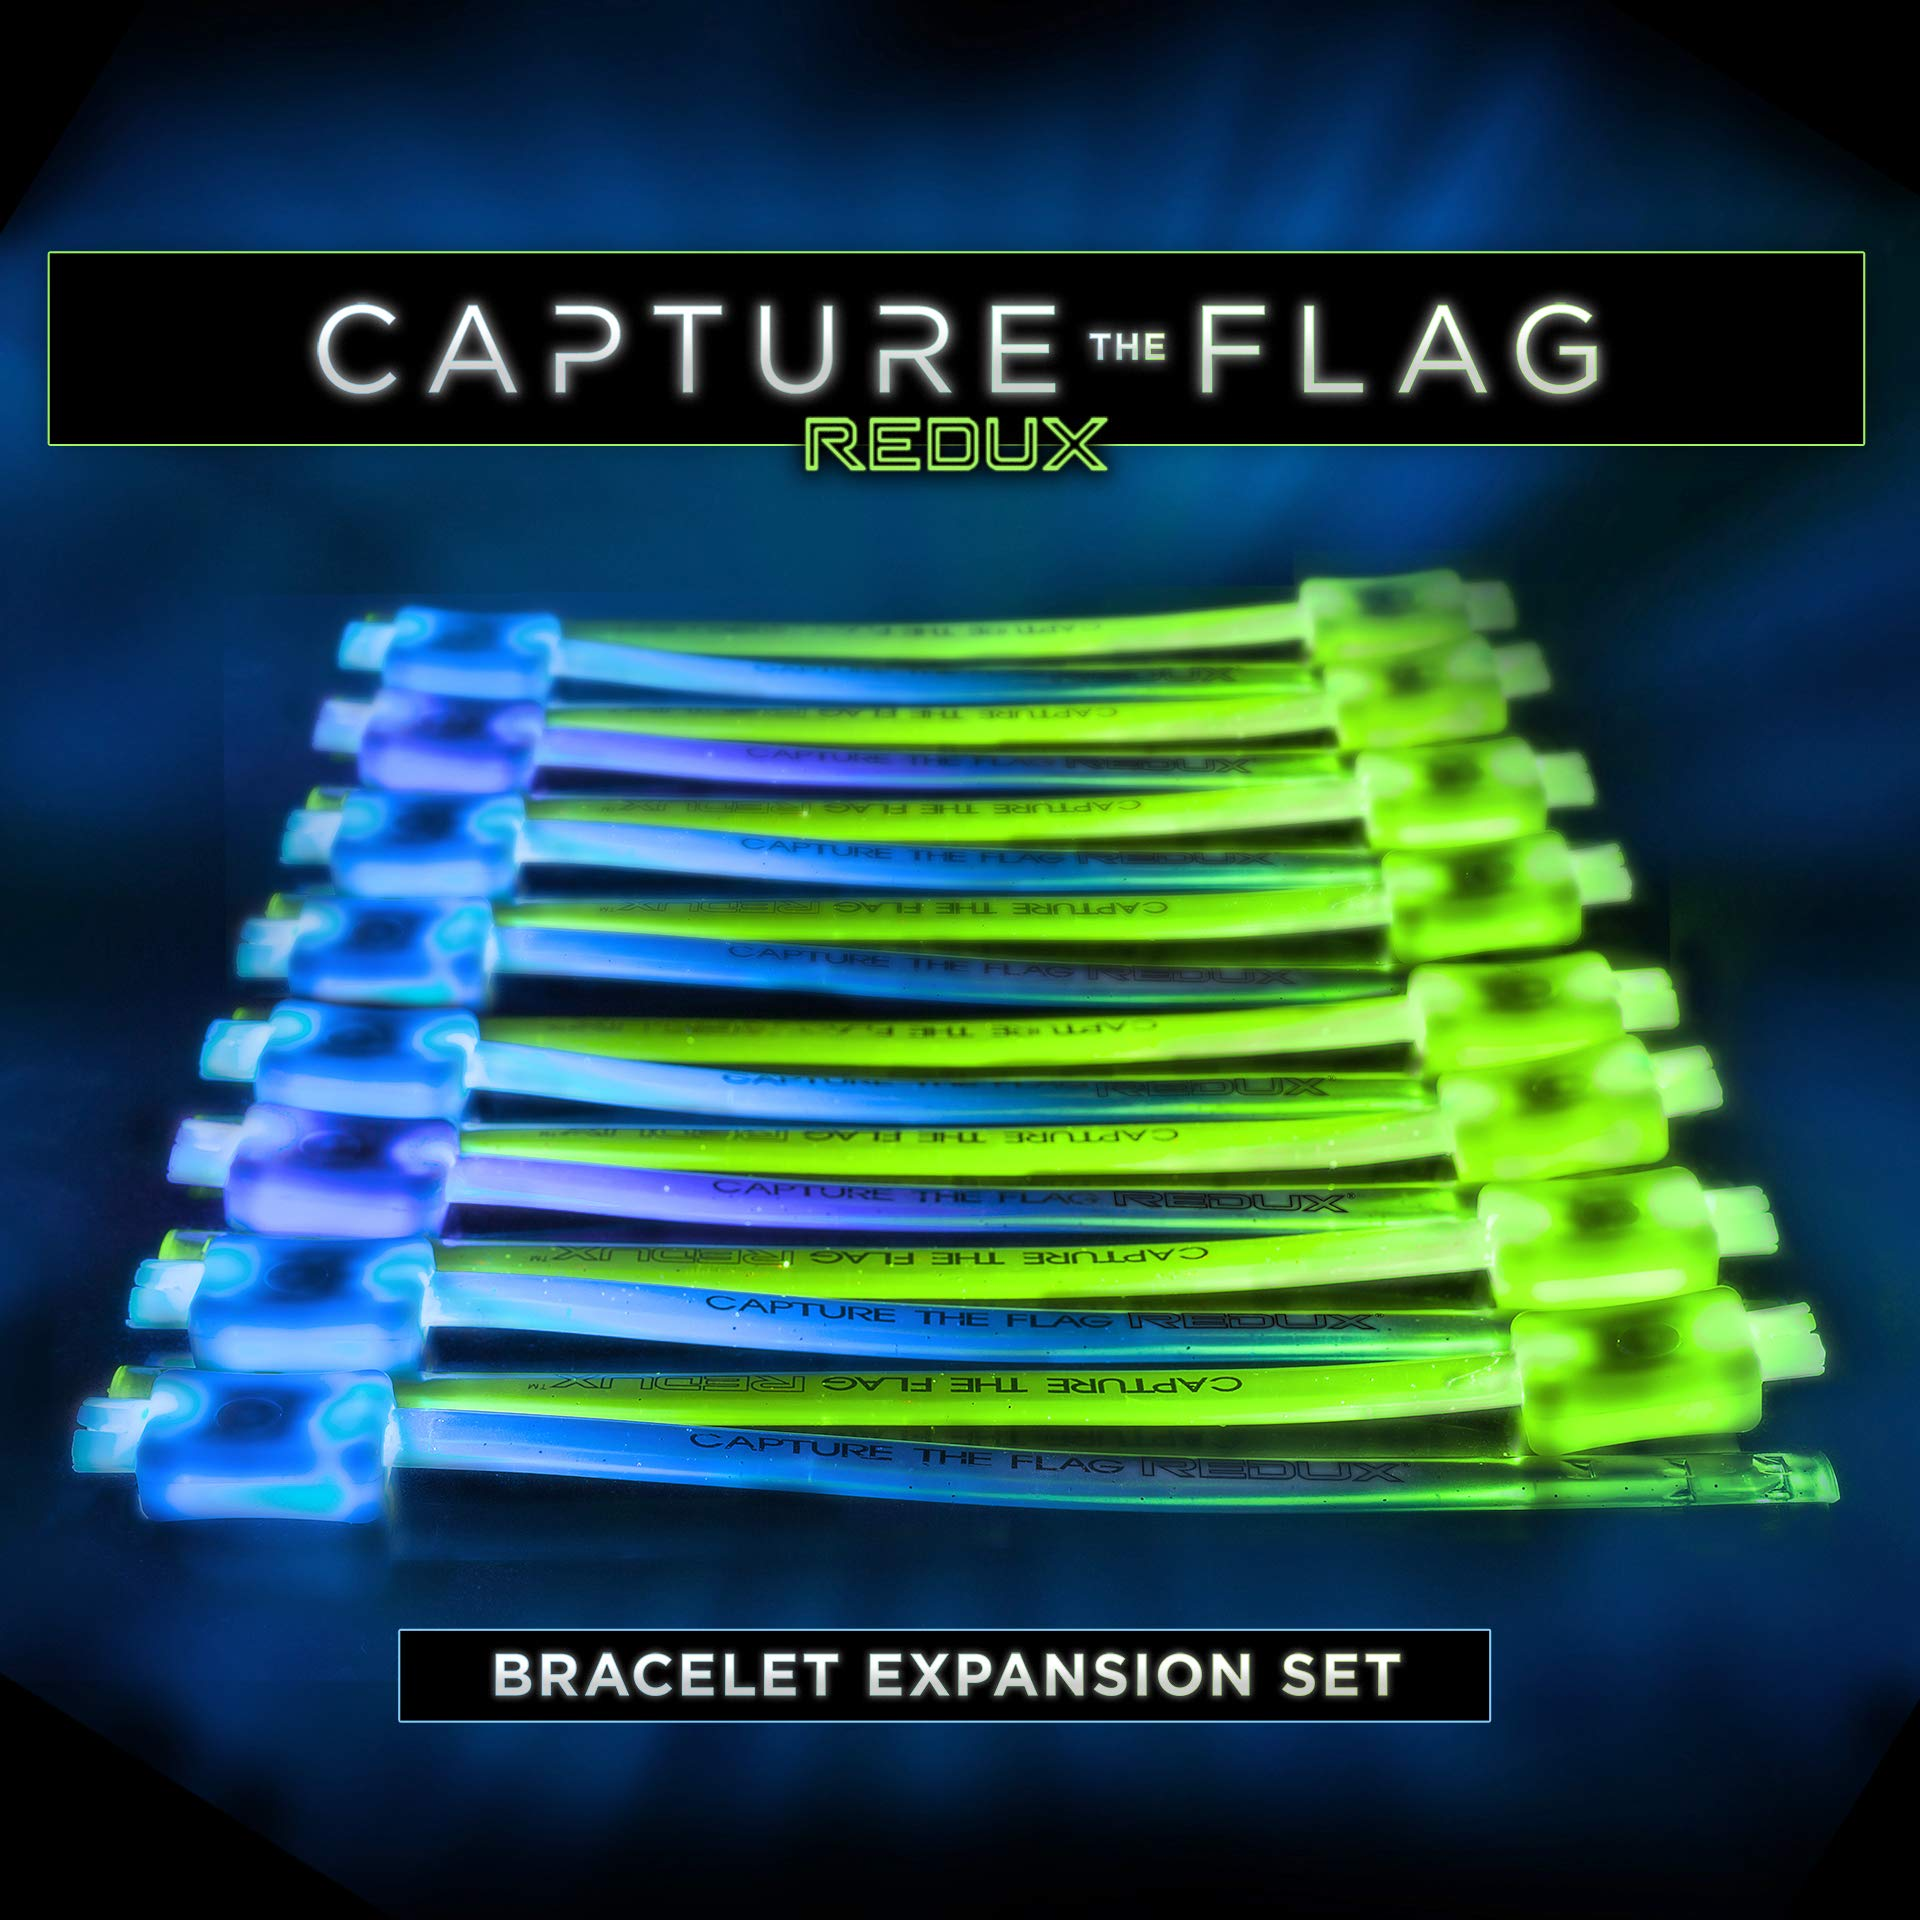 Capture the Flag REDUX: Glow-in-The-Dark Bracelet Expansion Set - Allow up to 16 Additional Players by Starlux Games